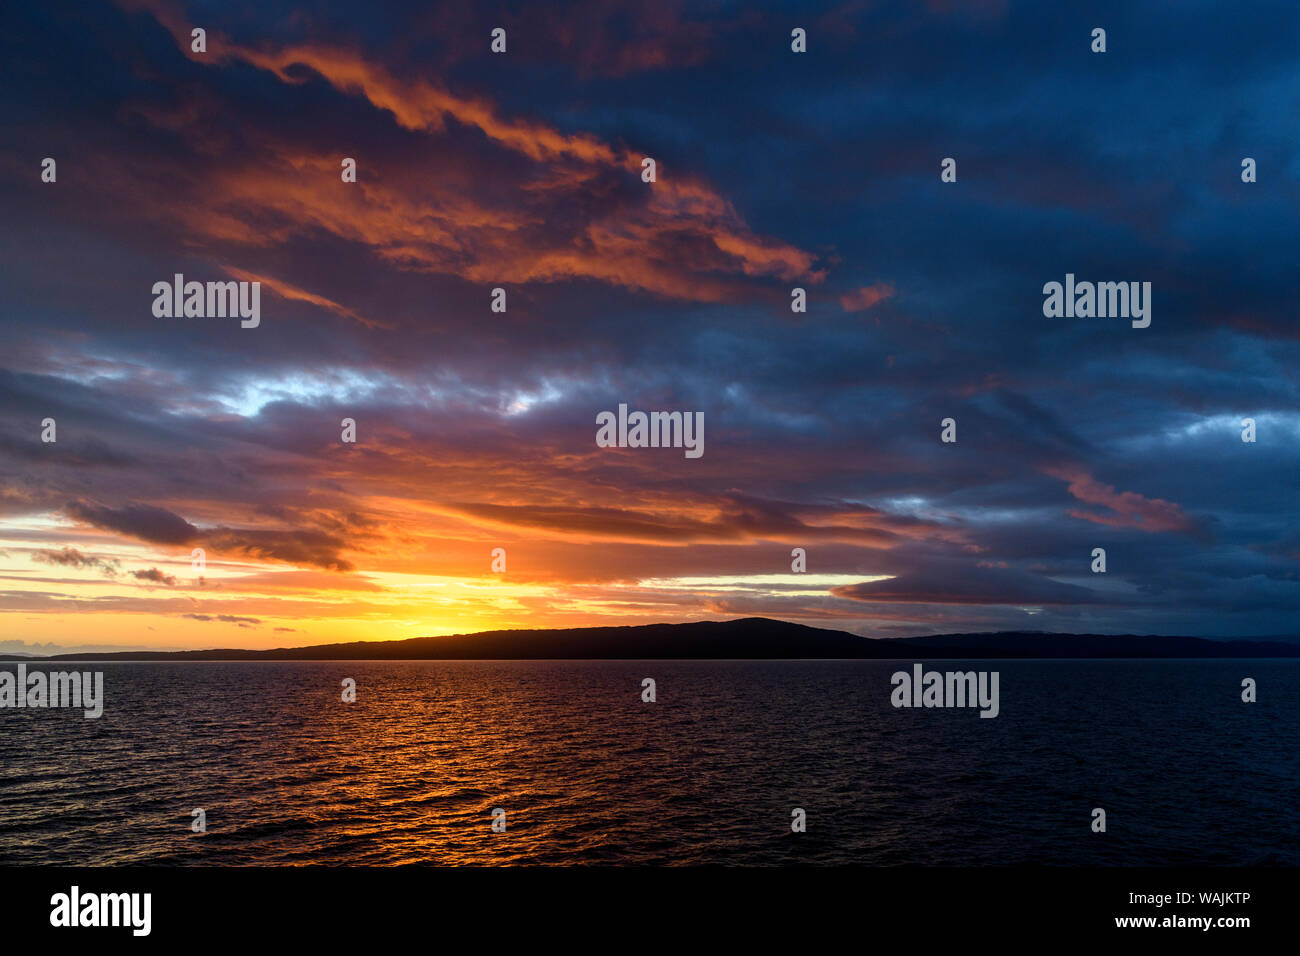 Argentina, Tierra del Fuego, Beagle Channel at sunset. Stock Photo